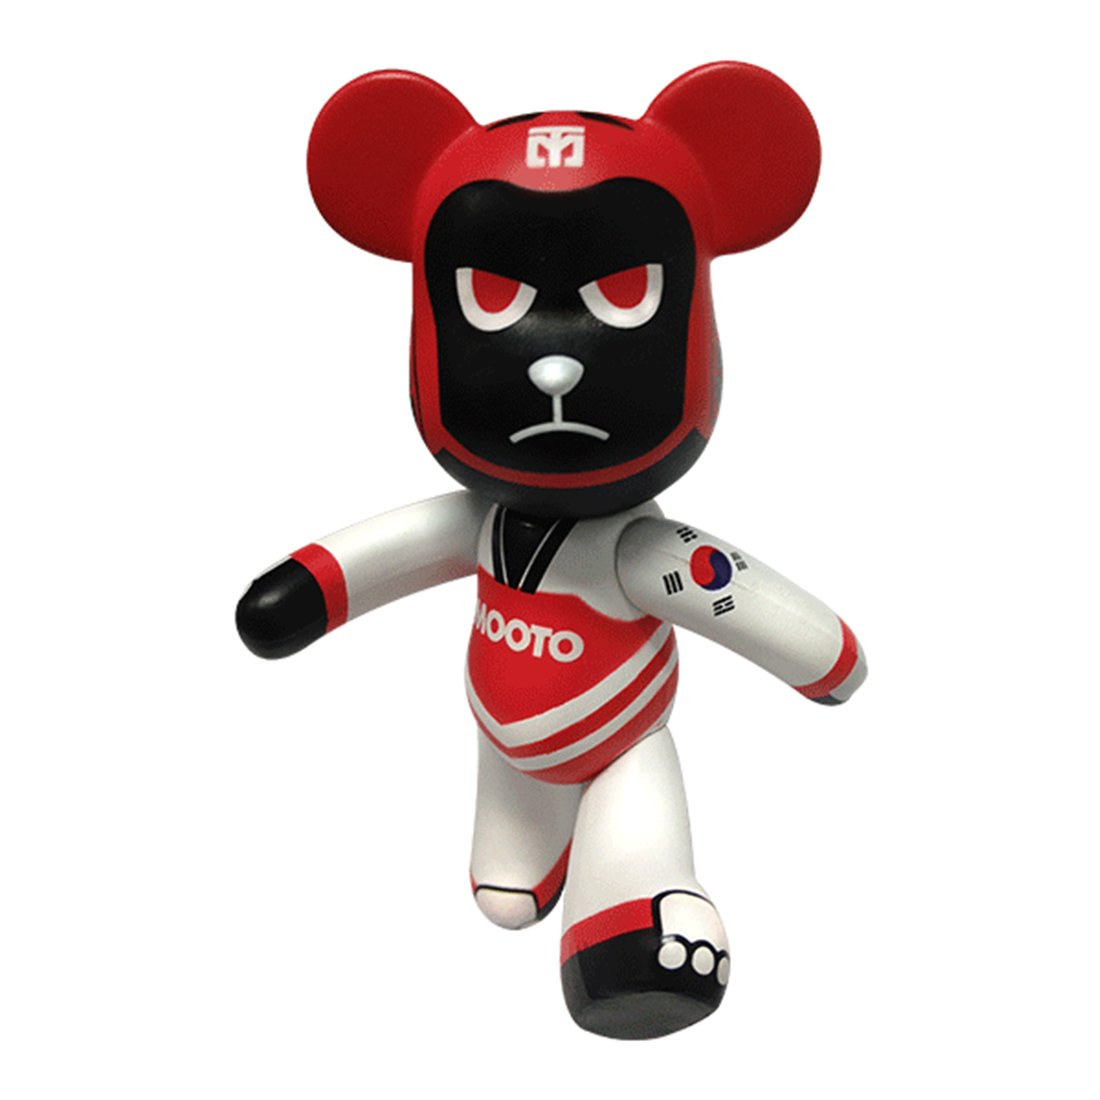 Mooto Korea Taewwondo Portachiavi Bears 4 Type for Bag Uniform (2. Sparing)